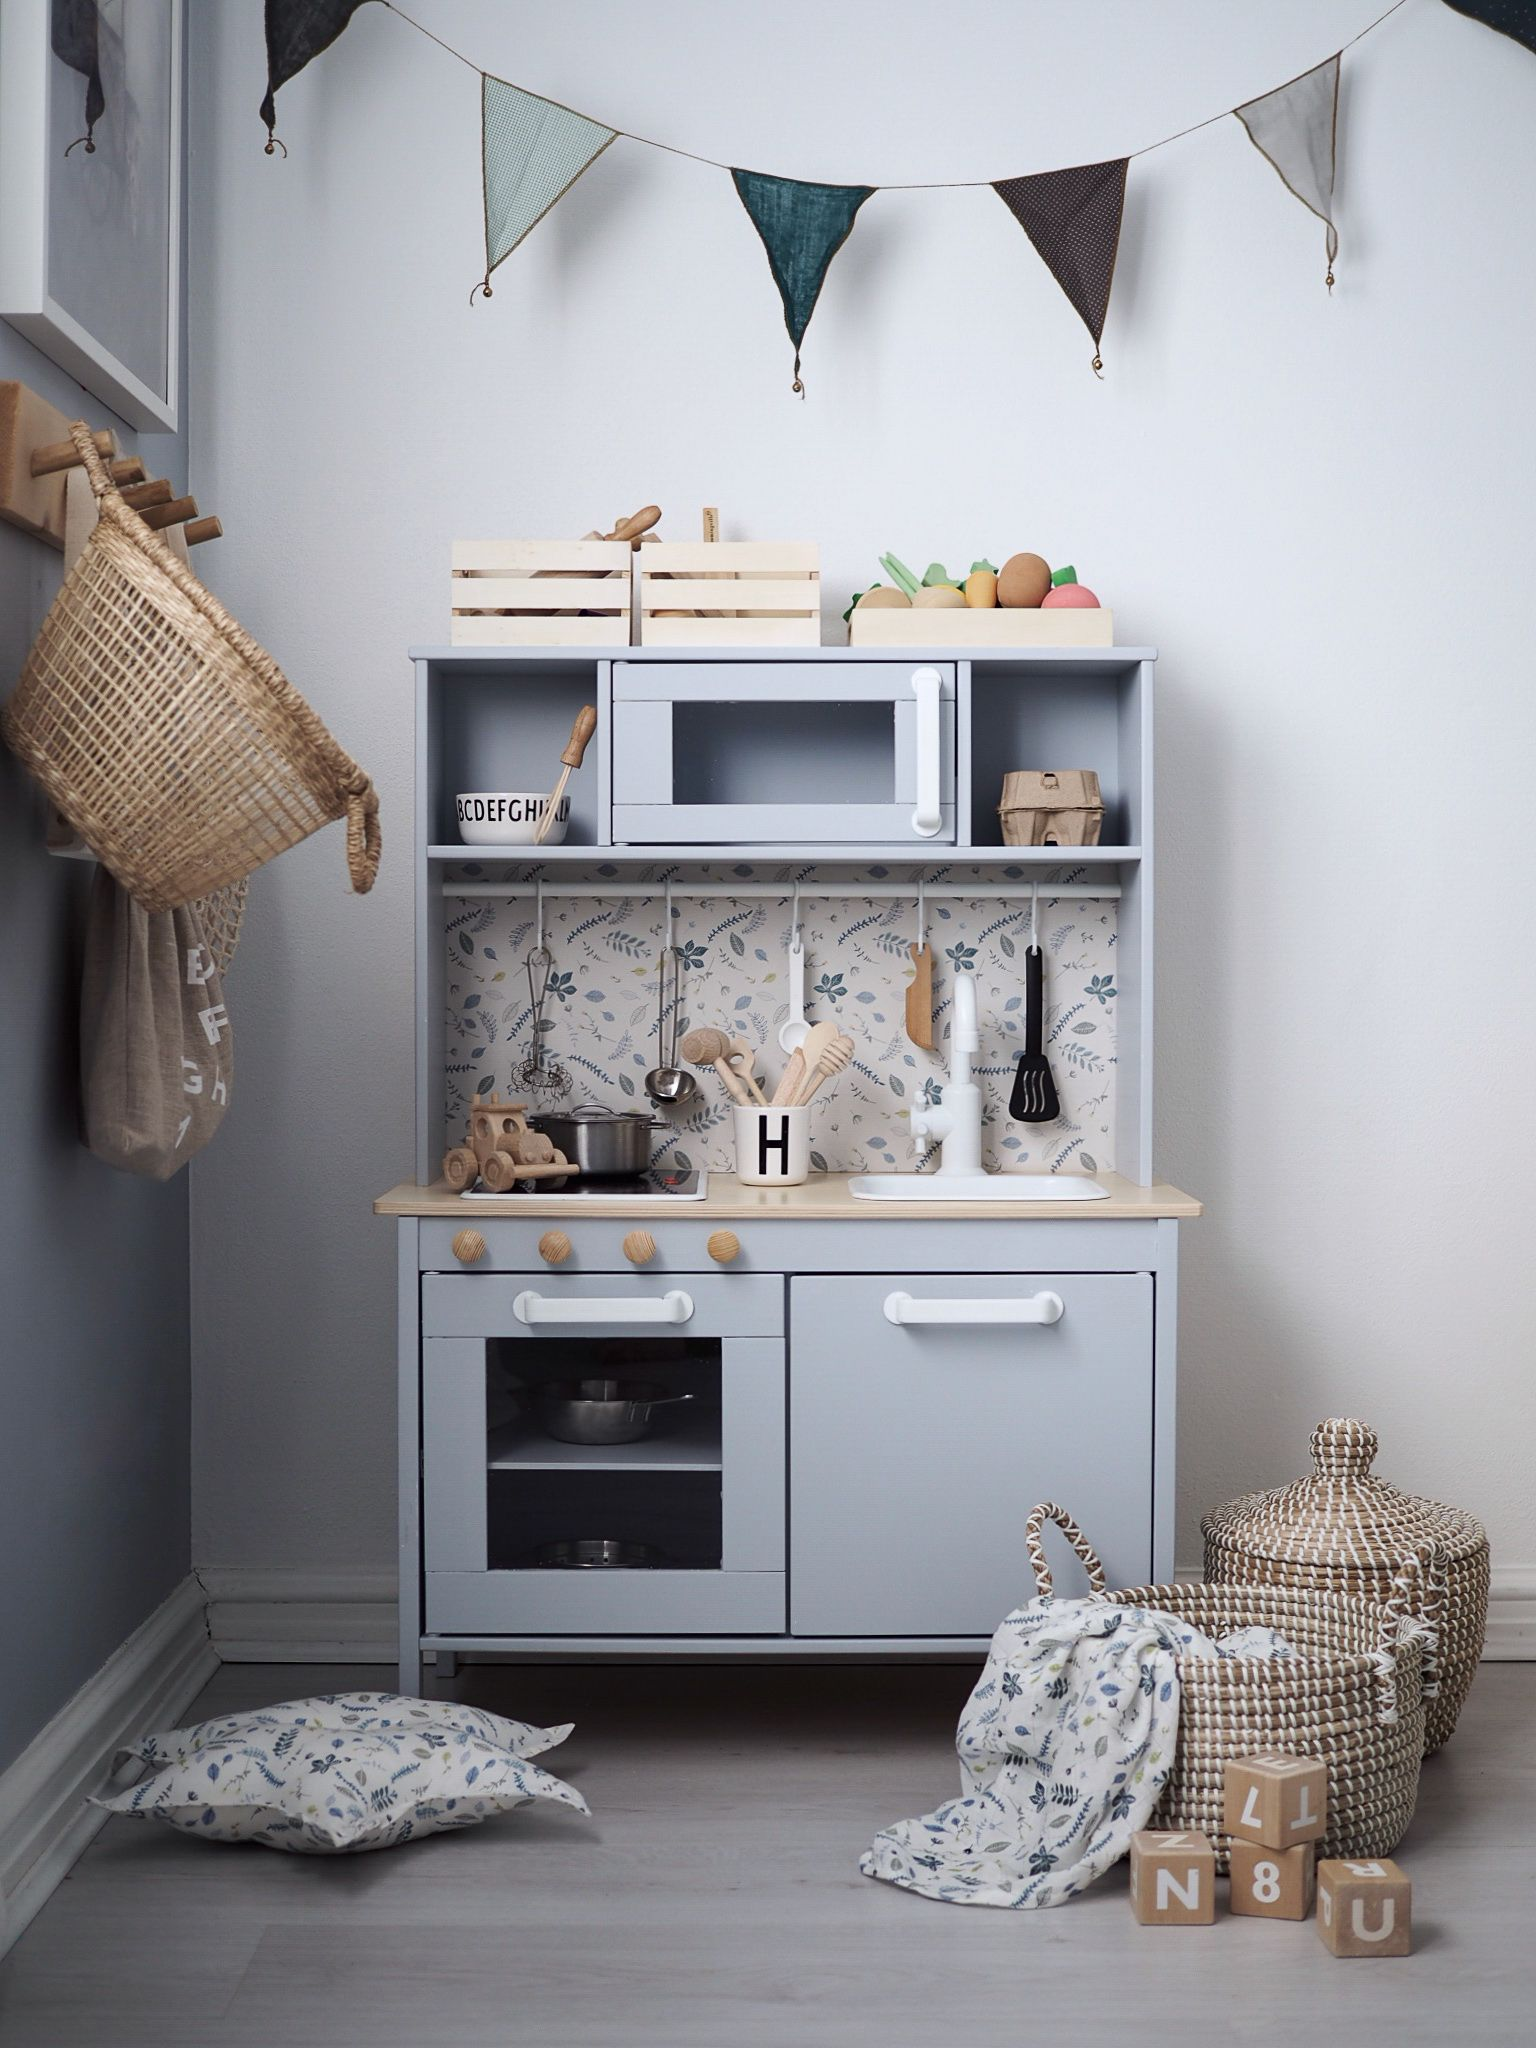 Stunning Ikea play kitchen Hack by @Ellebear. Paint is by Dulux (Miller Mood) and the splashback is Pressed Leaves blue Wallpaper by Cam Cam Copenhagen.